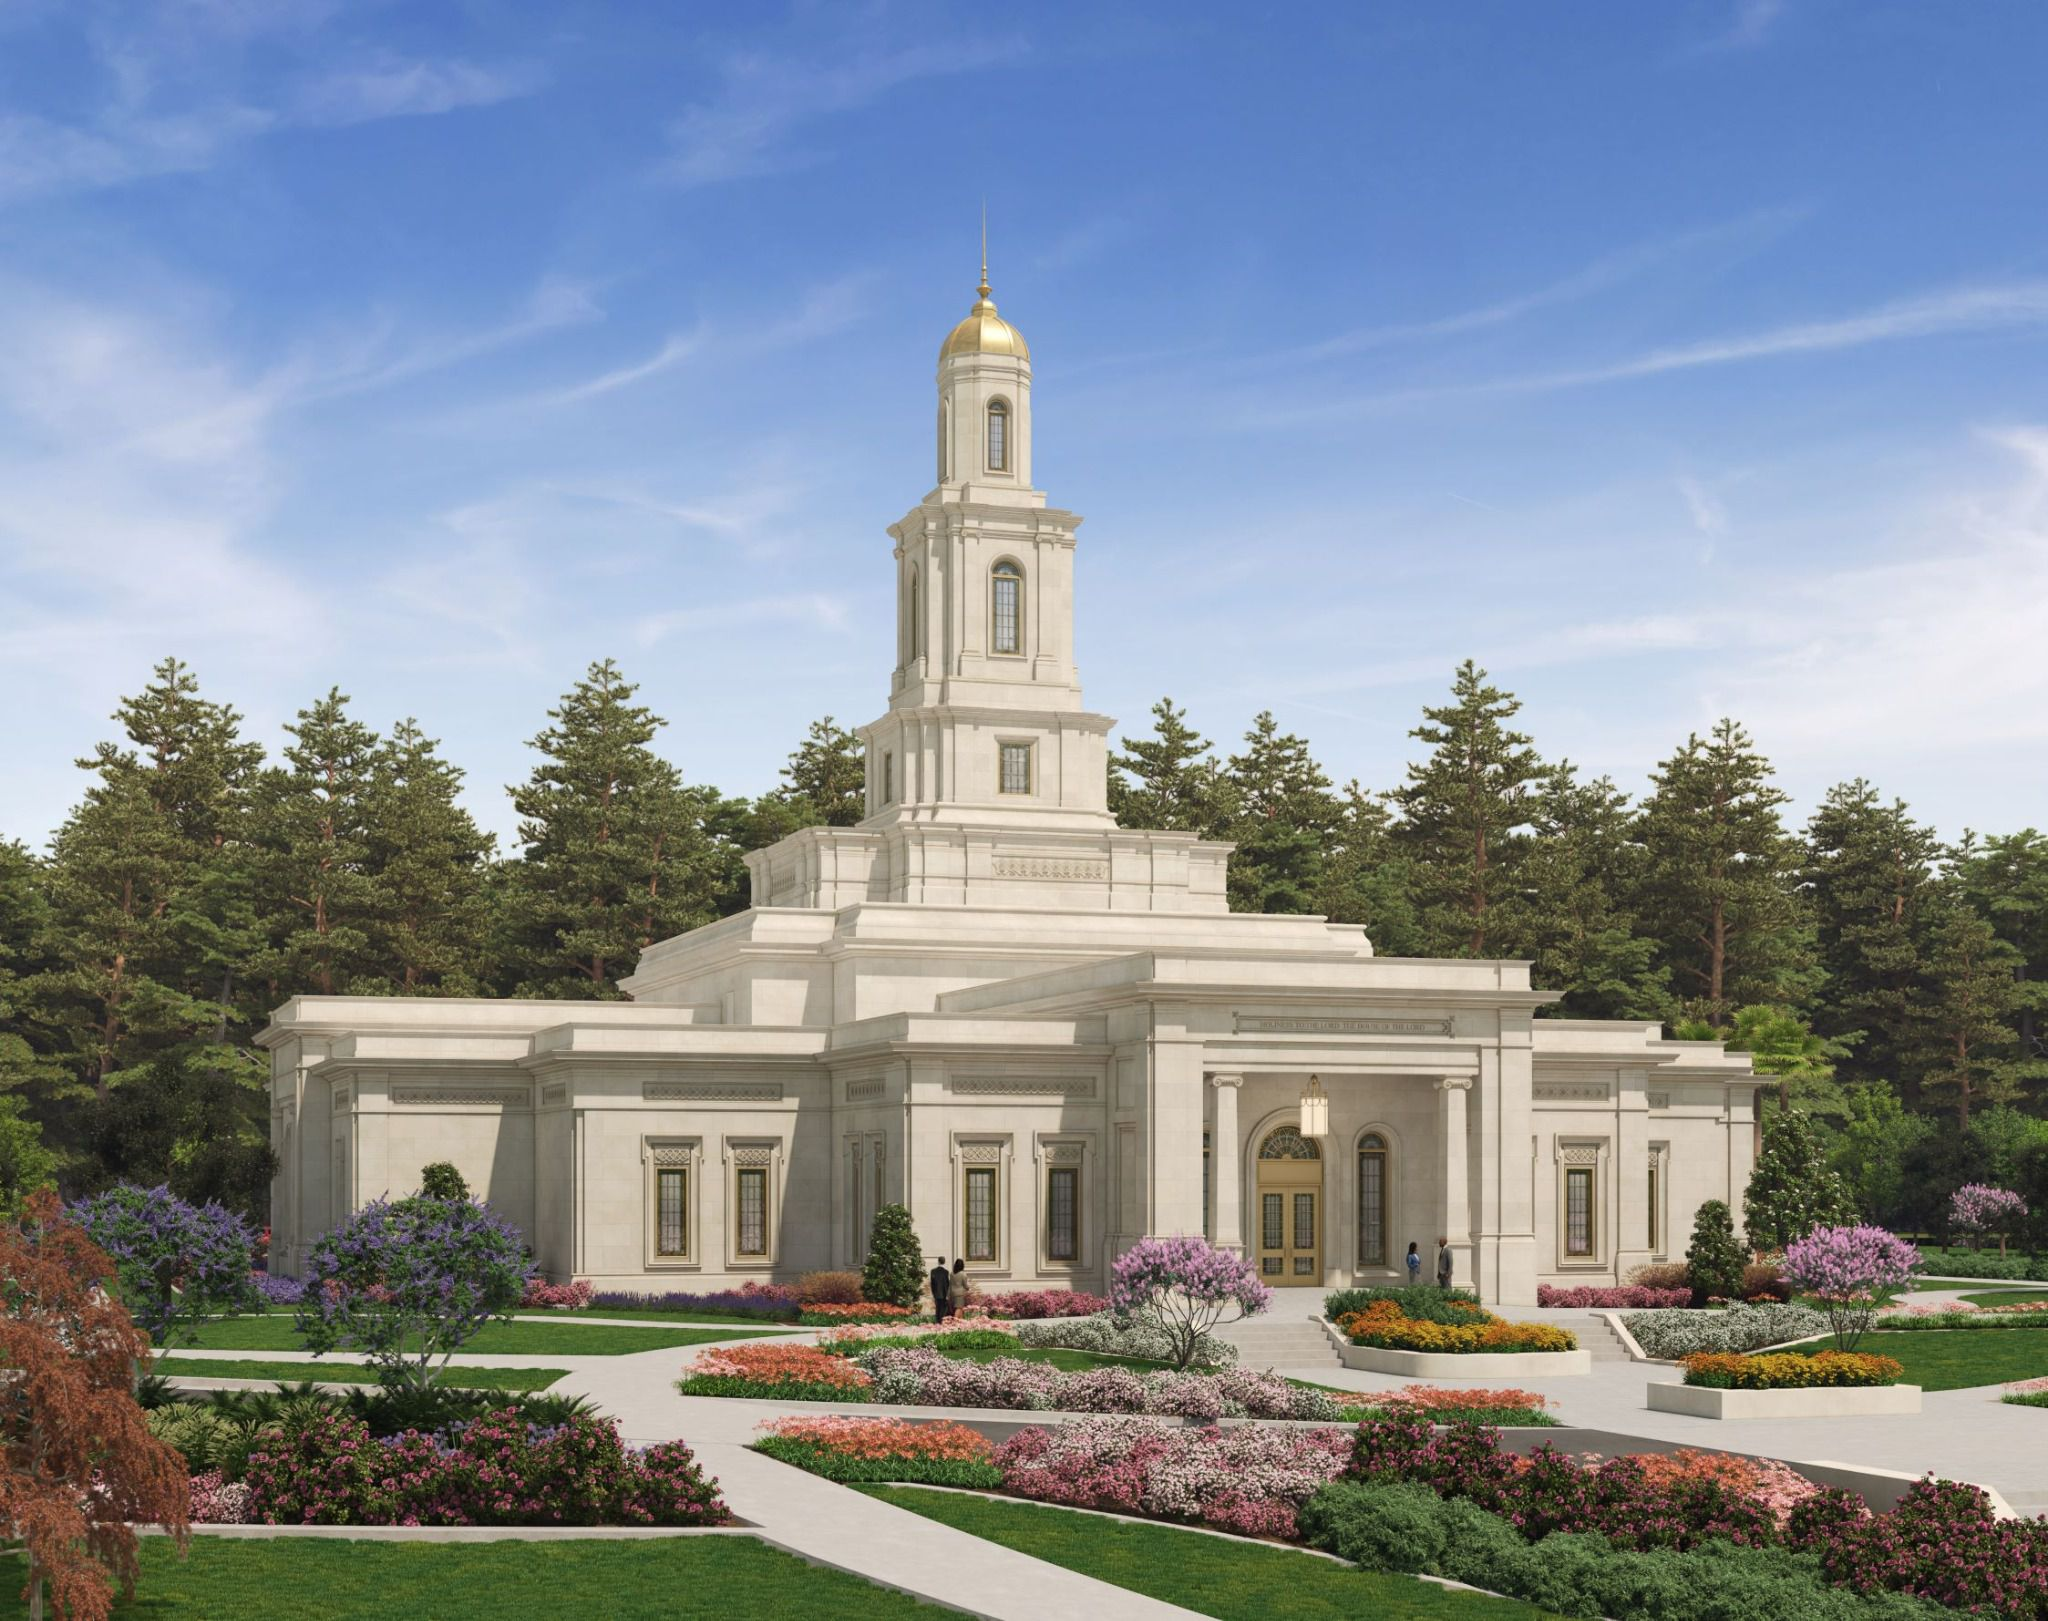 (Rendering courtesy of The Church of Jesus Christ of Latter-day Saints) Tallahassee Florida Temple.